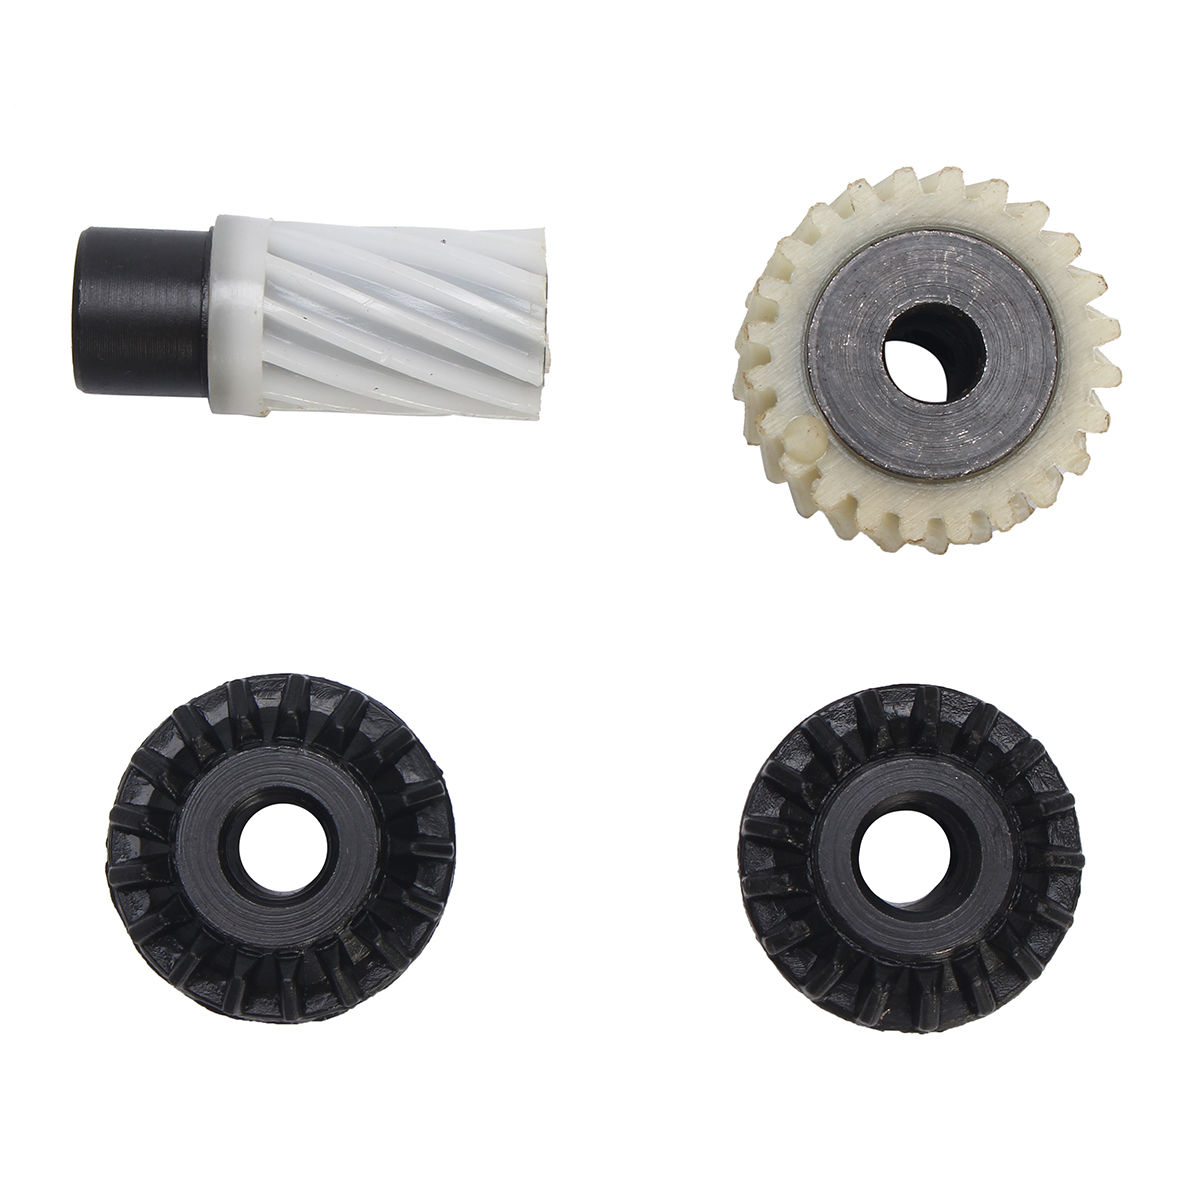 501 502 503 778 SEWING MACHINE FEED SHAFT GEAR WORKS ON SINGER 290,500